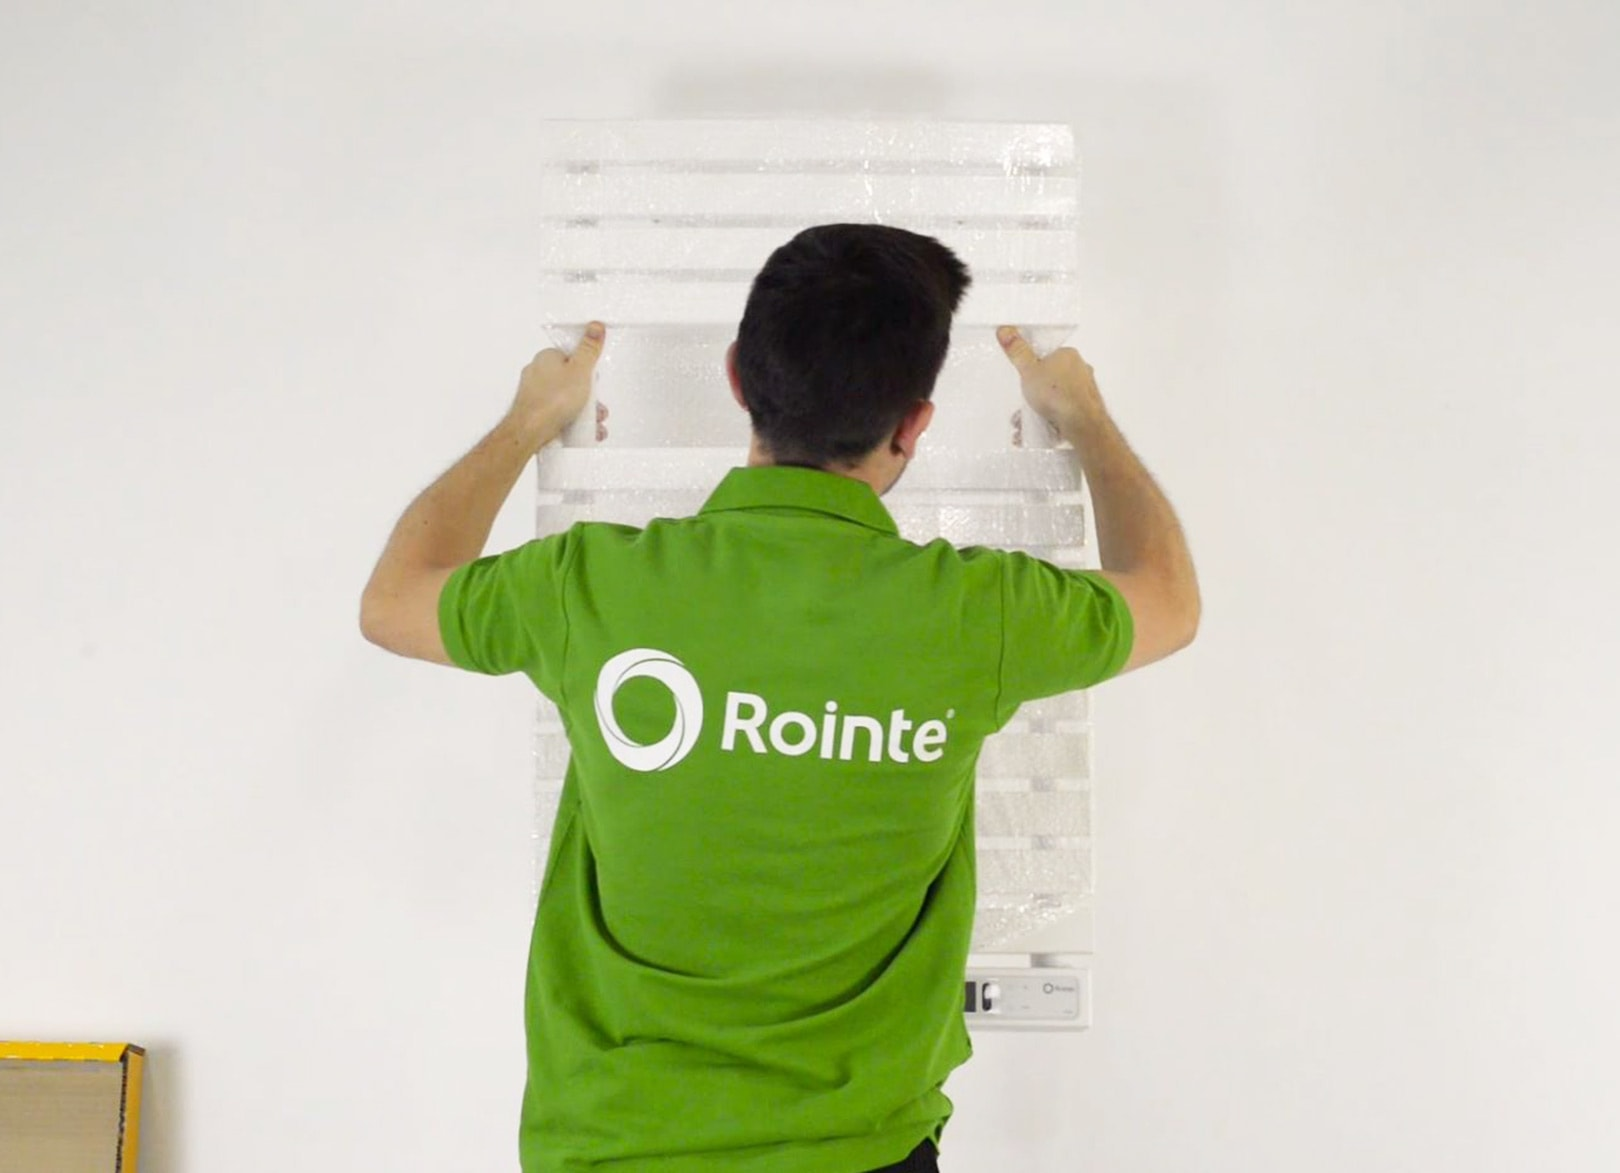 Rointe installer mounting a Rointe towel rail to the wall